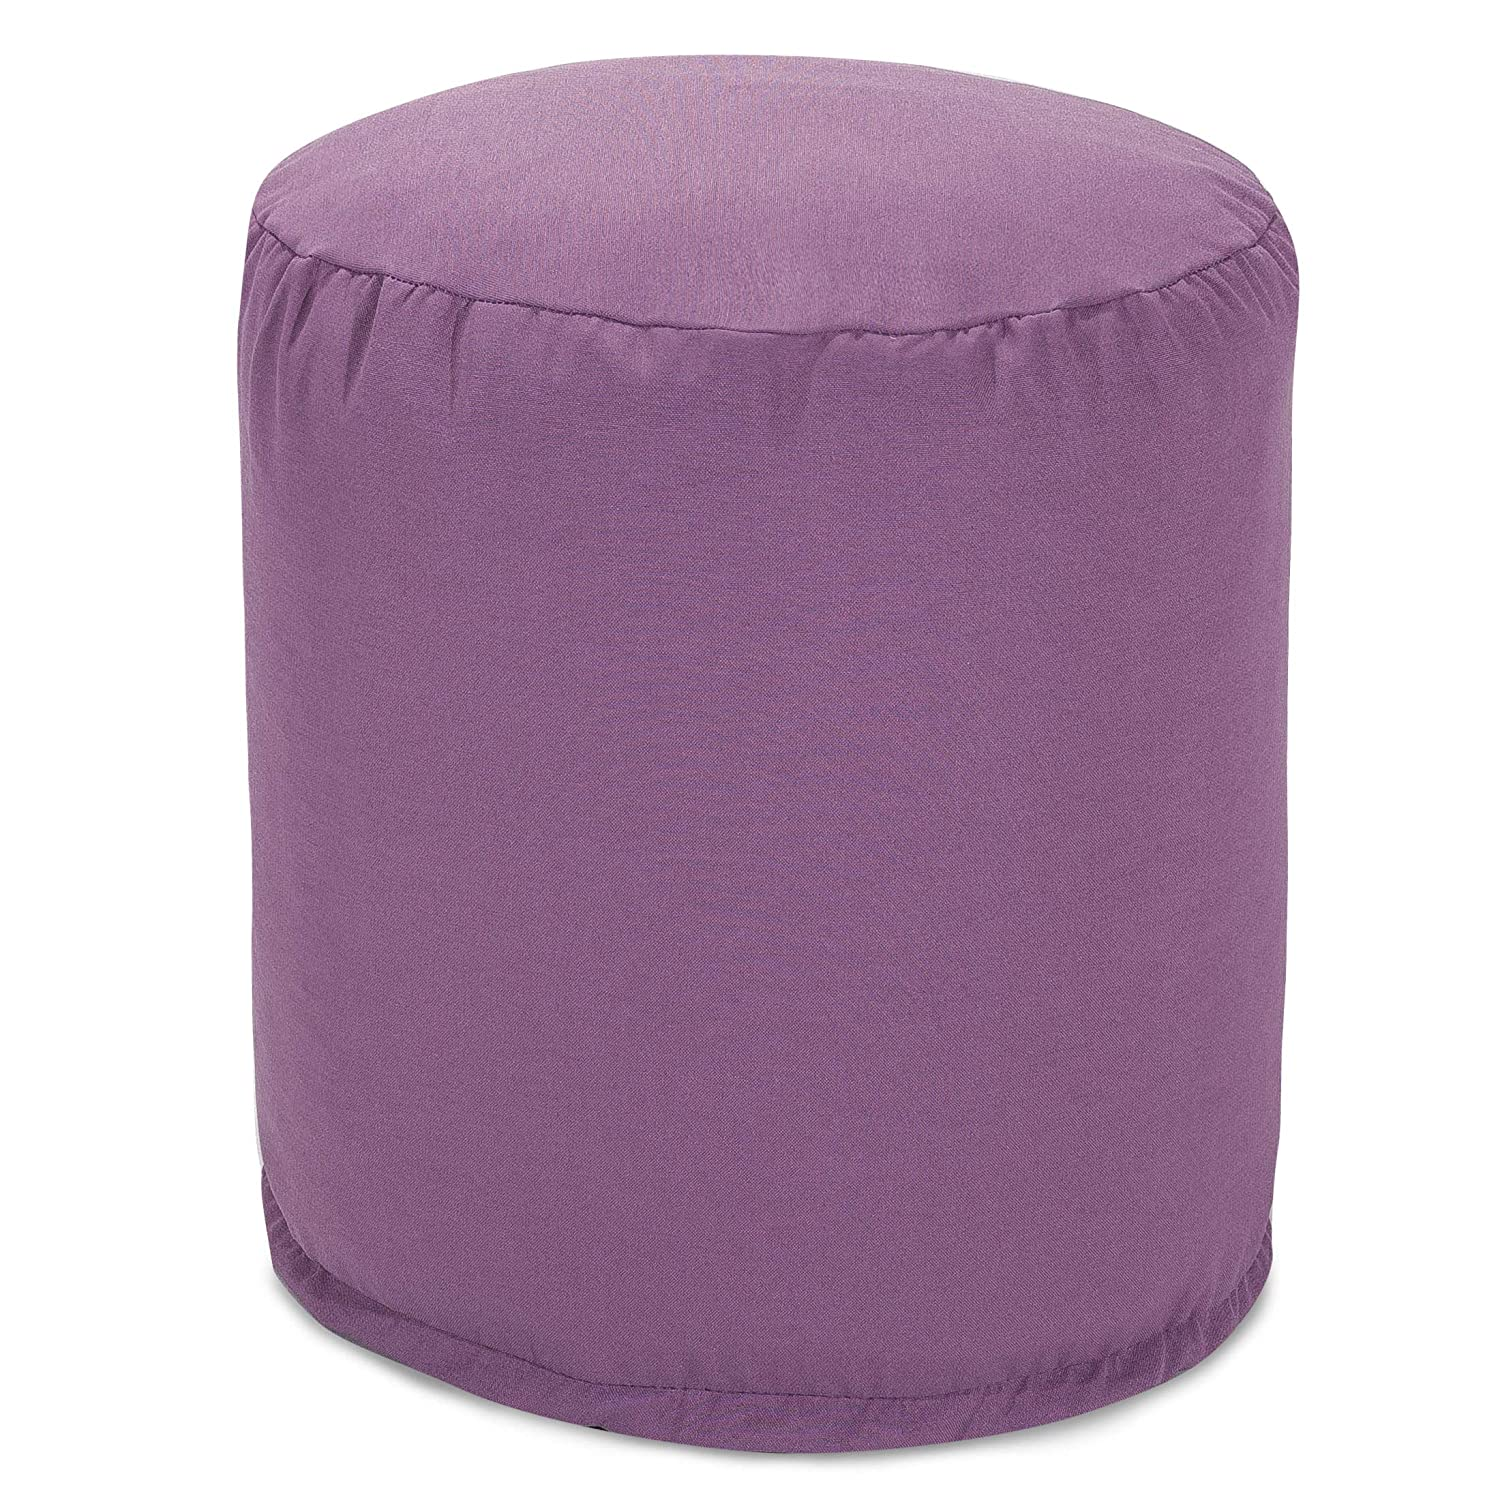 Majestic Home Goods Teal Solid Indoor/Outdoor Bean Bag Ottoman Pouf 16 L x 16 W x 17 H Majestic Home Goods LG 85907239036